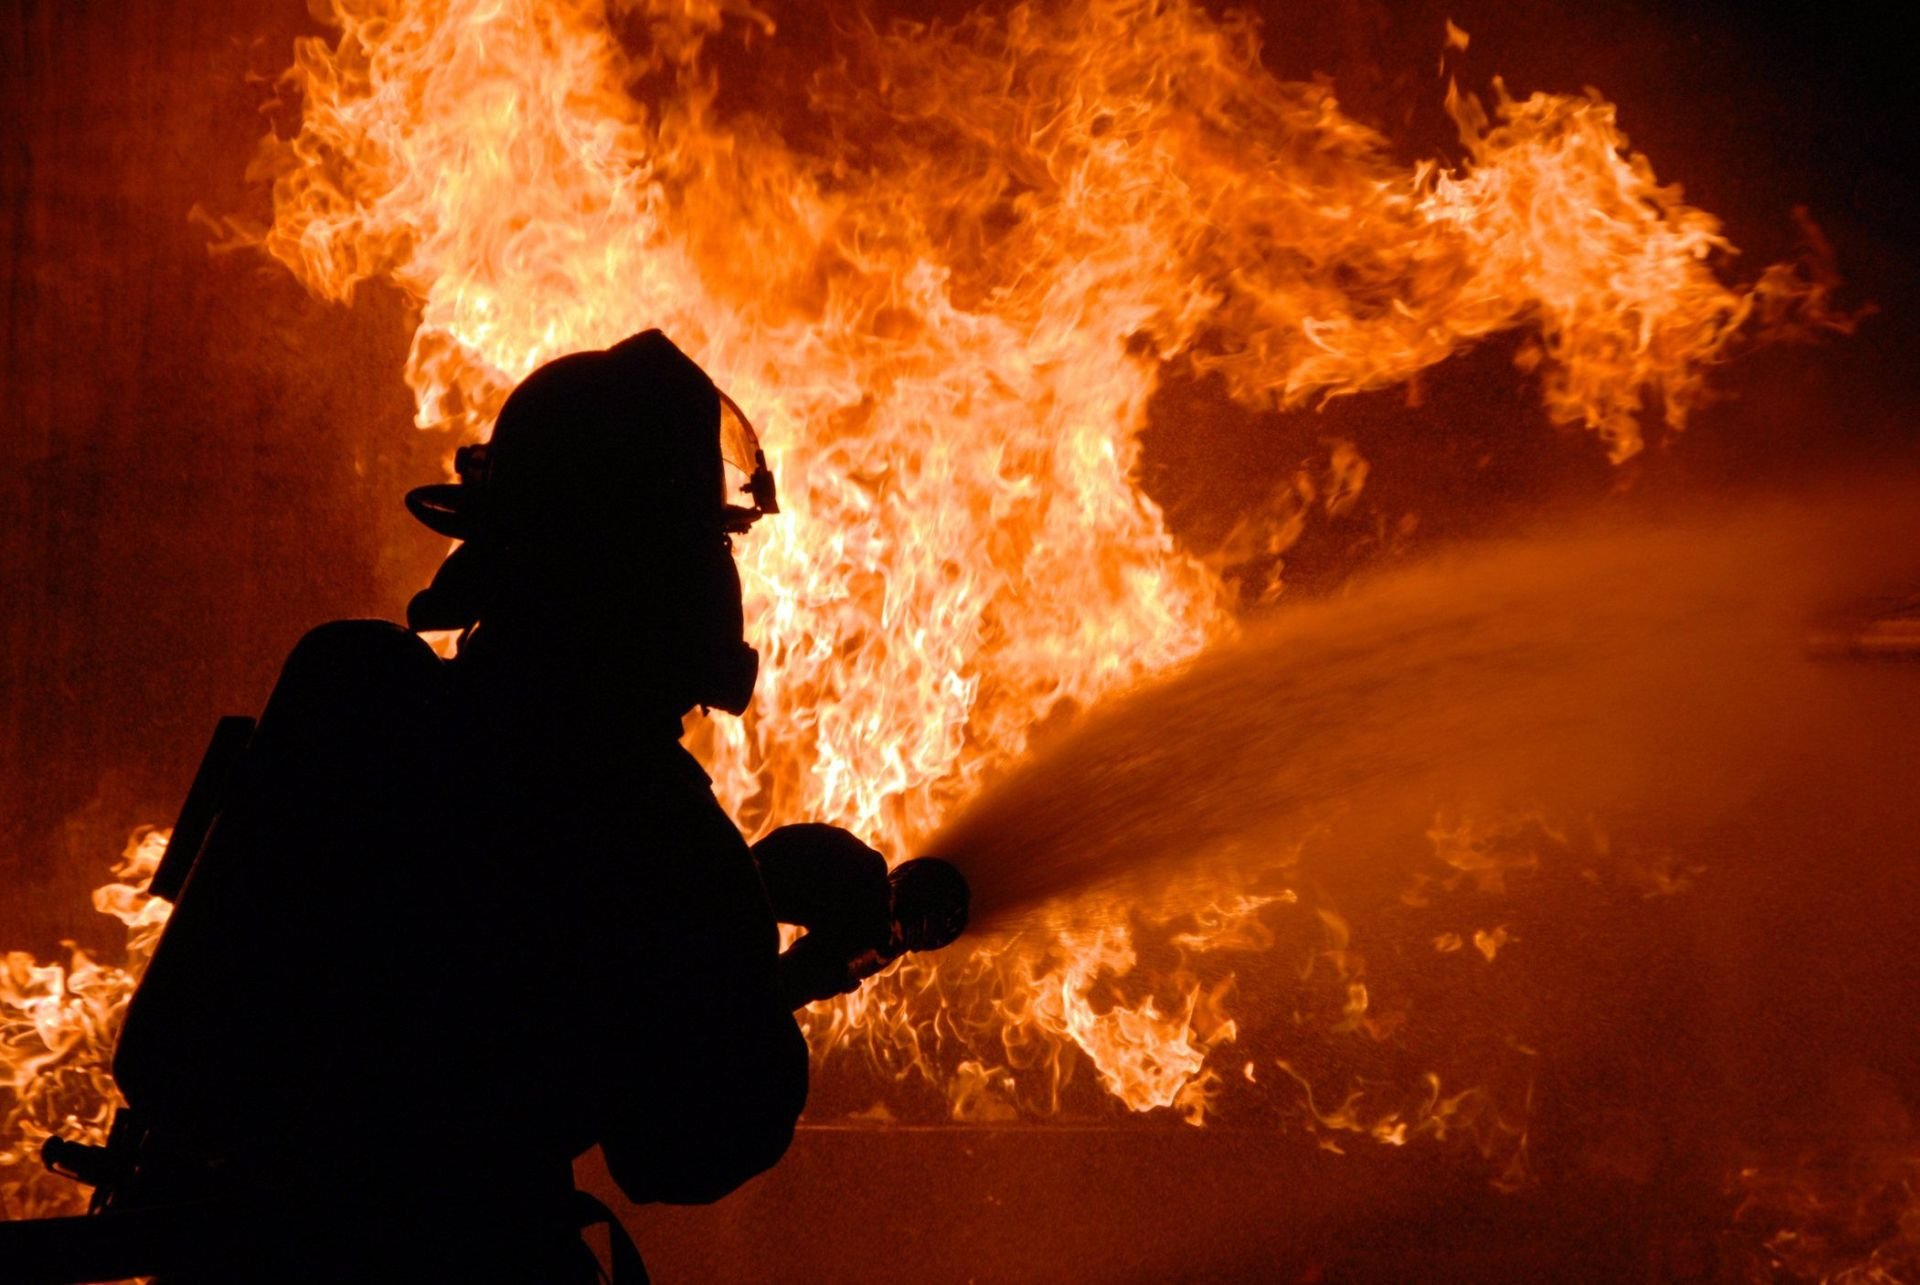 Firefighter Desktop Wallpapers   HD Wallpapers Backgrounds of Your 1920x1285